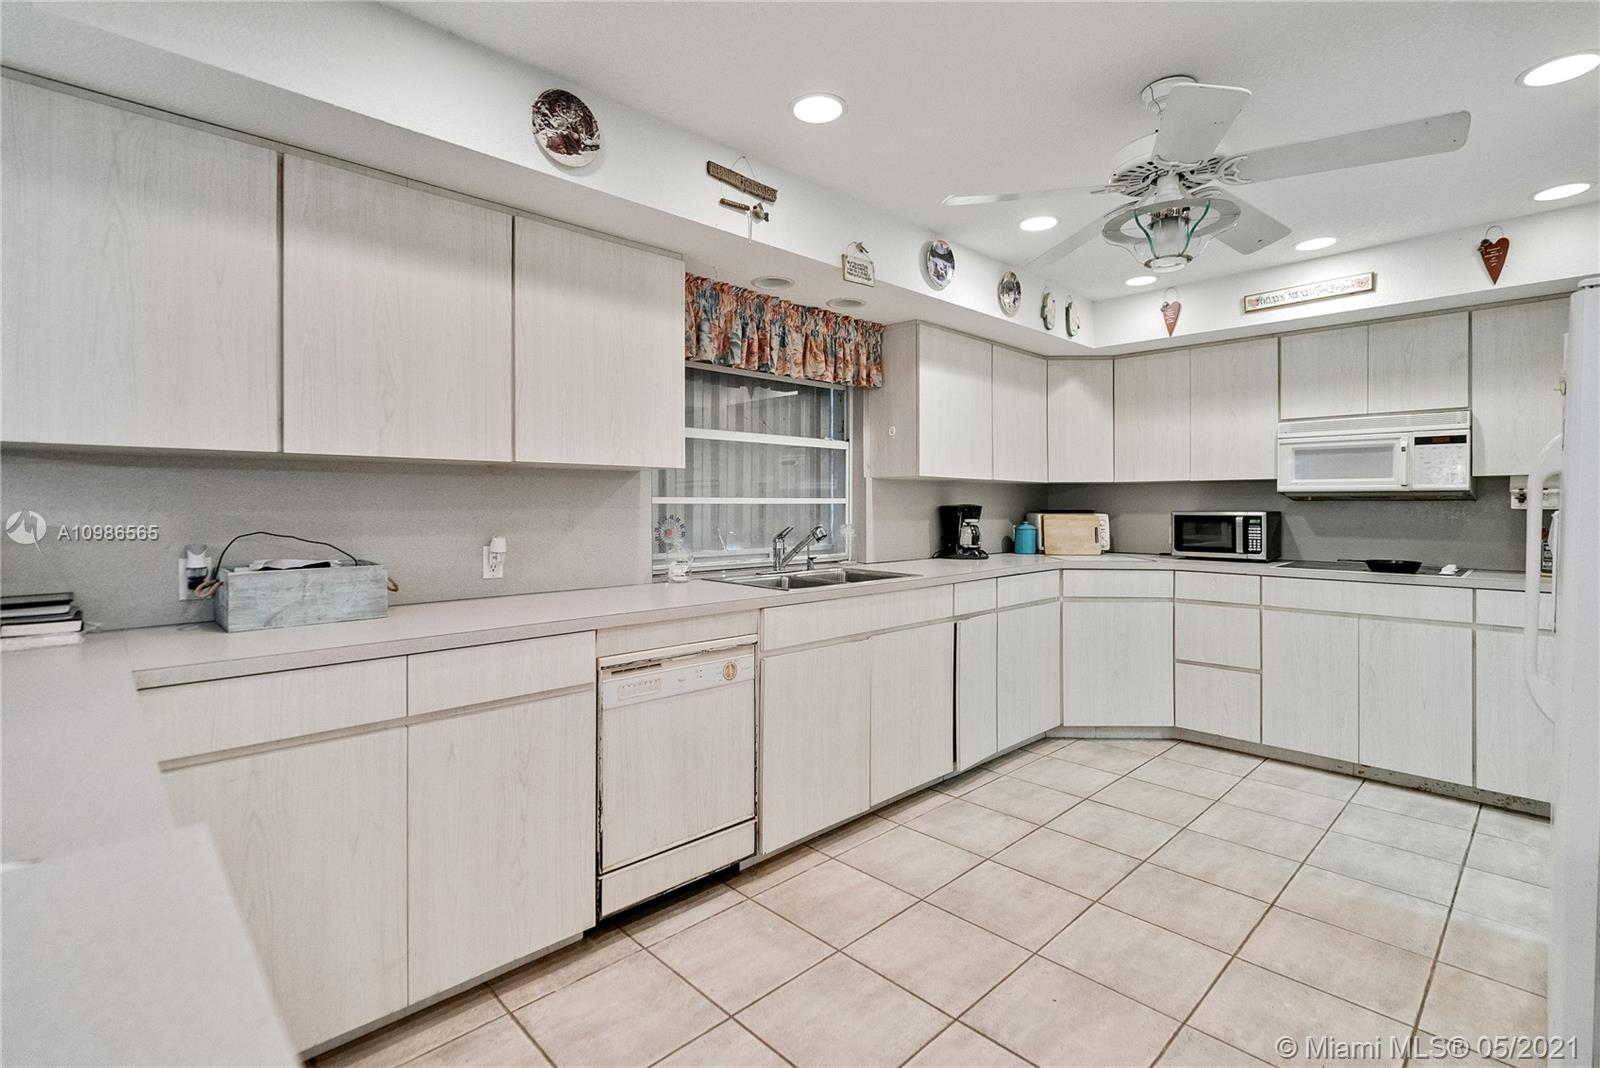 Super spacious kitchen, with lots of storage , and floating island , not in this pic